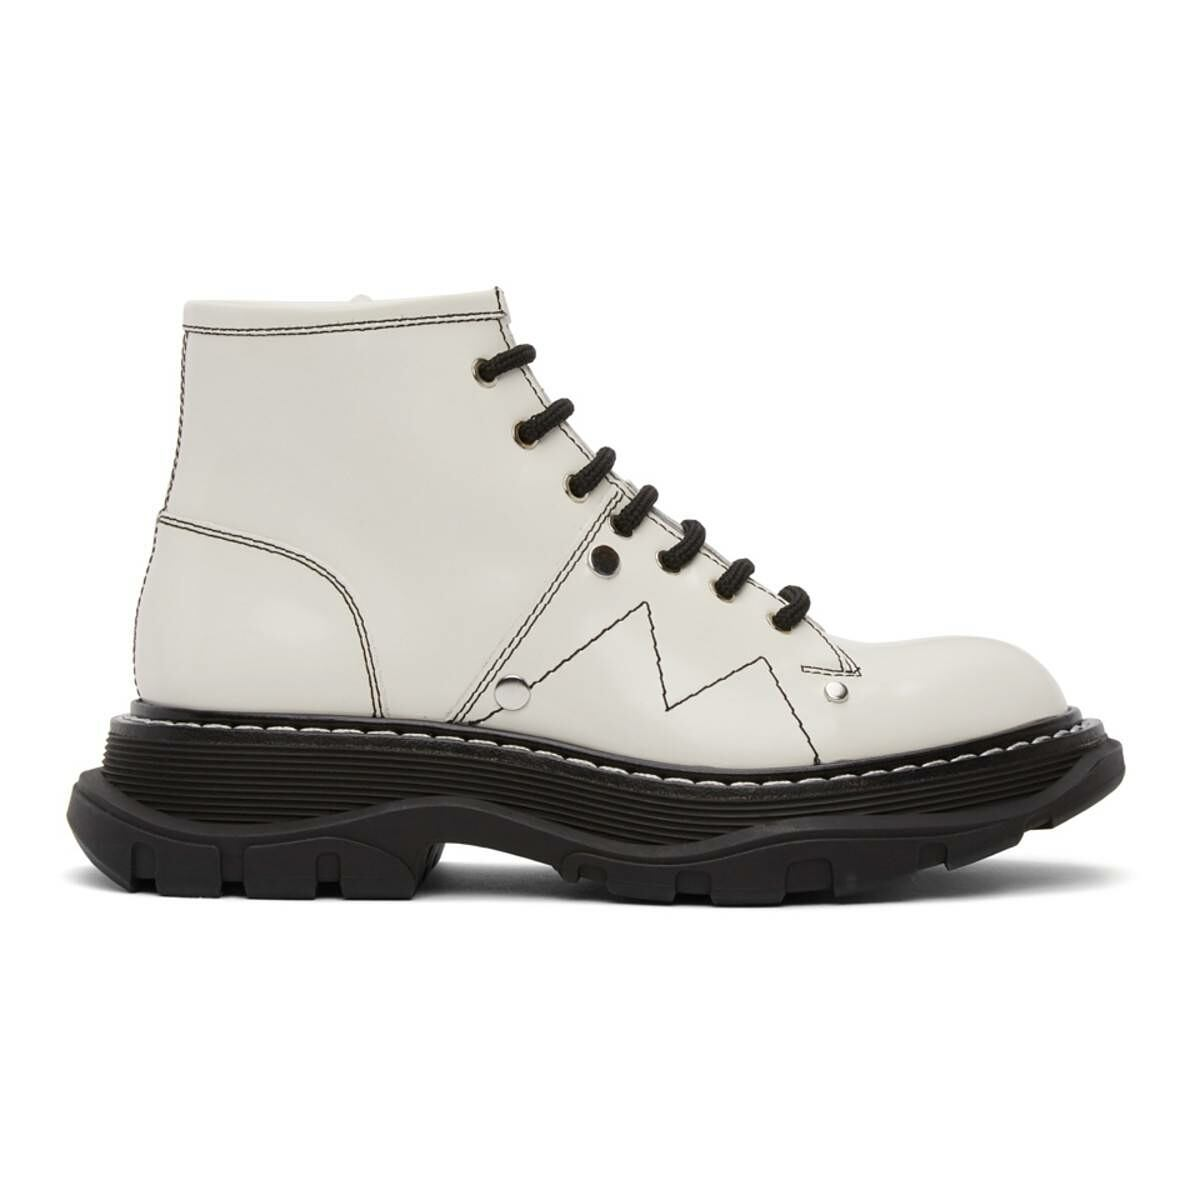 Alexander McQueen Off-White Tread Lace-Up Boots Ssense USA WOMEN Women SHOES Womens ANKLE BOOTS